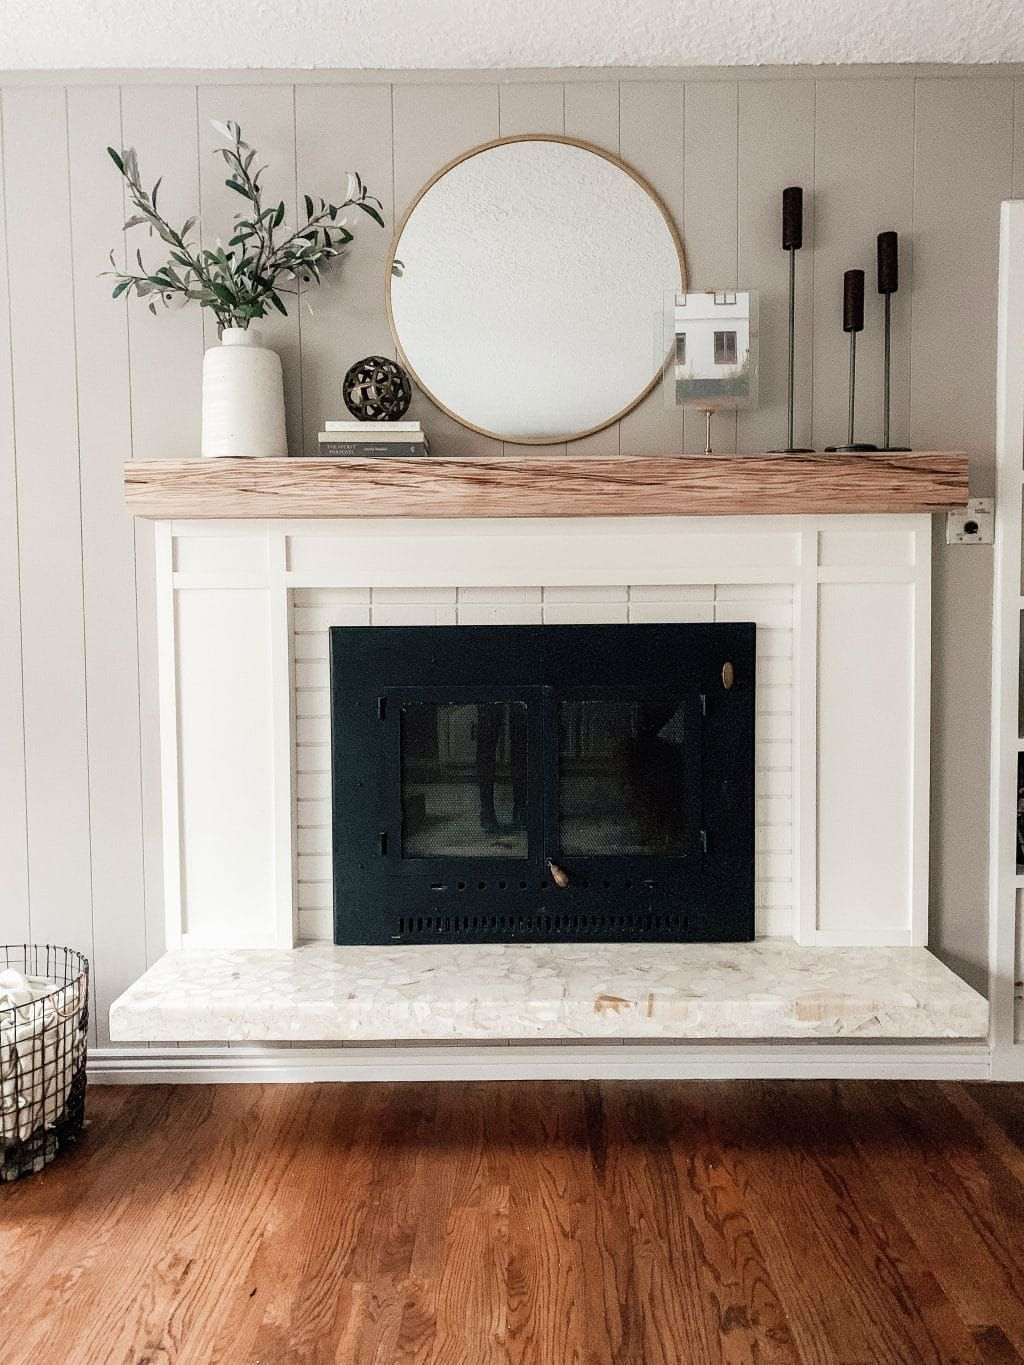 One-Day, $300 Fireplace Makeover